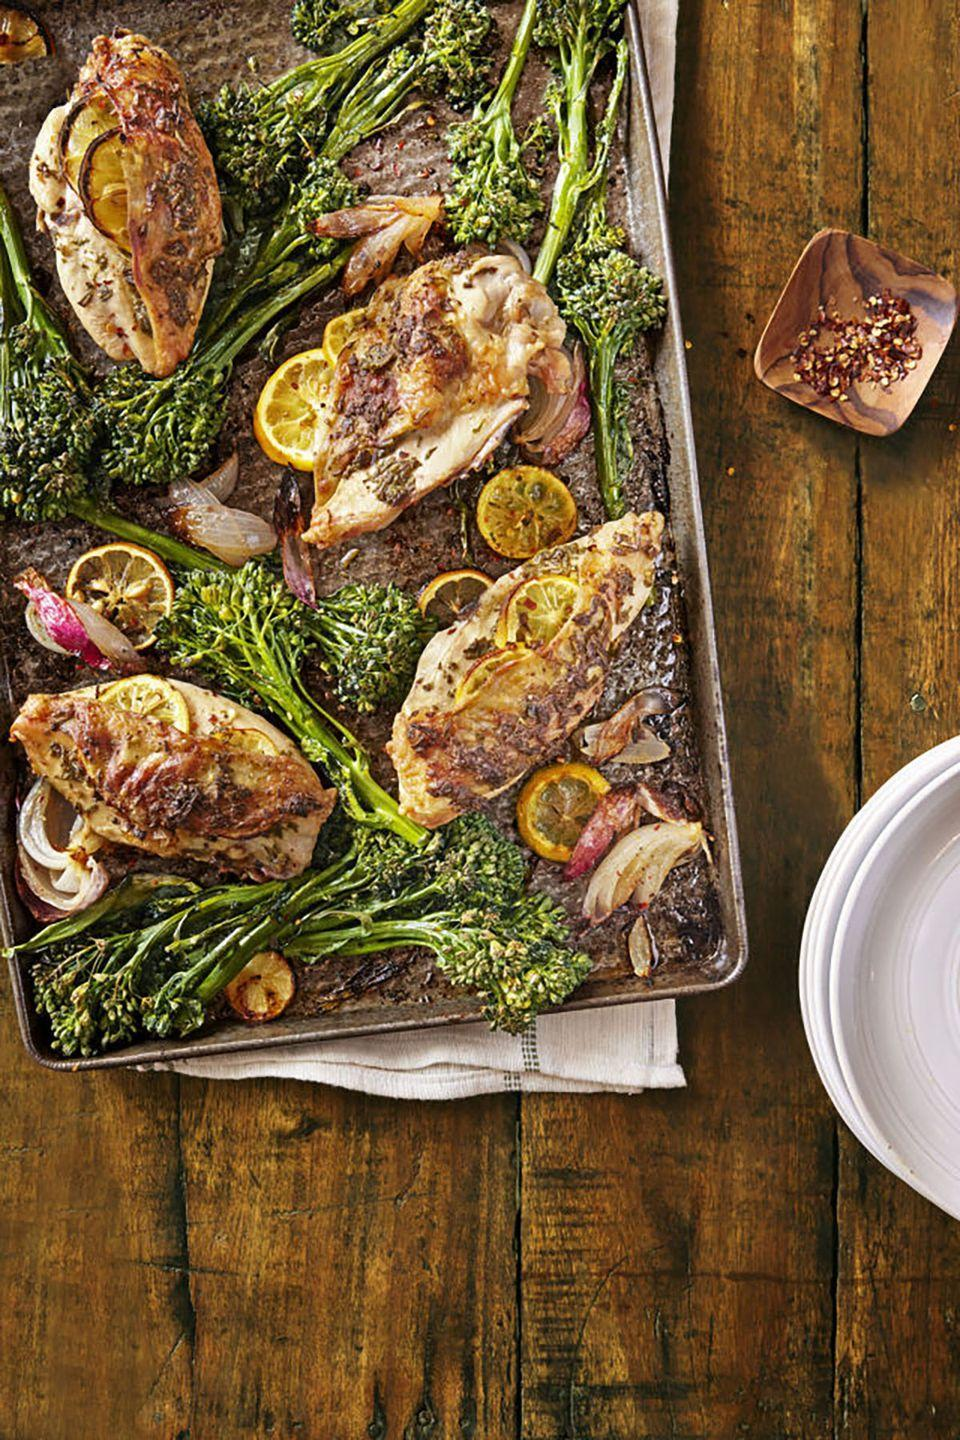 "<p>Vitamin-packed Broccolini is an ingenious hybrid between broccoli and Chinese broccoli. Roasting the chicken with lemon slices and a rosemary mixture inside makes this entree burst with flavor.</p><p><strong><a href=""https://www.countryliving.com/food-drinks/recipes/a39830/lemon-rosemary-chicken-with-roasted-broccolini-recipe/"" rel=""nofollow noopener"" target=""_blank"" data-ylk=""slk:Get the recipe"" class=""link rapid-noclick-resp"">Get the recipe</a>.</strong></p>"